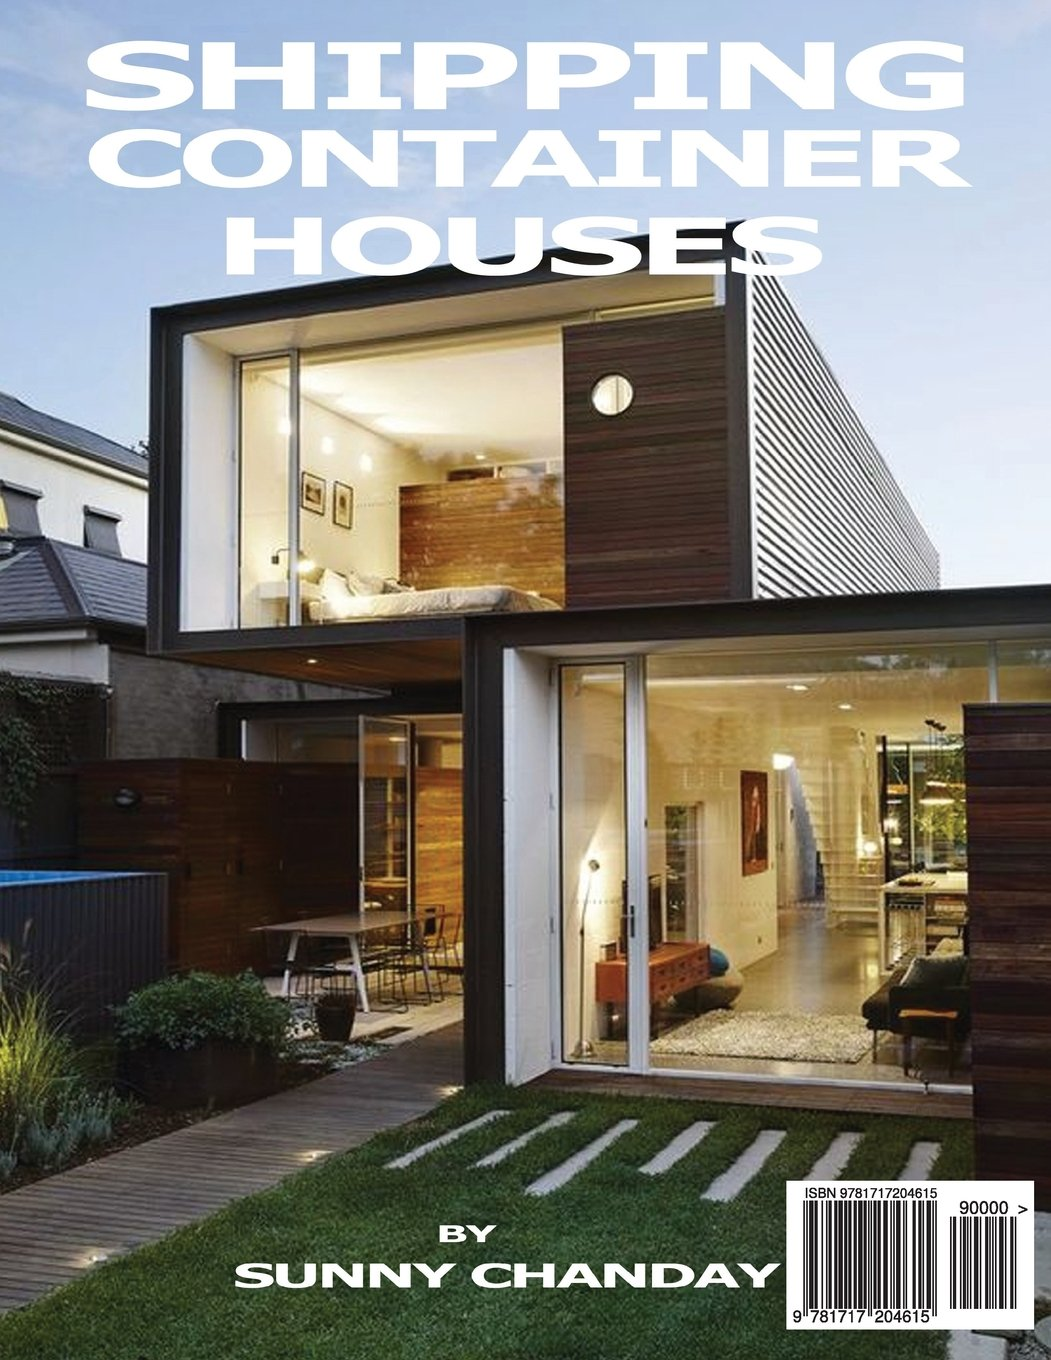 Shipping Container Houses Chanday Sunny 9781717204615 Amazon Com Books